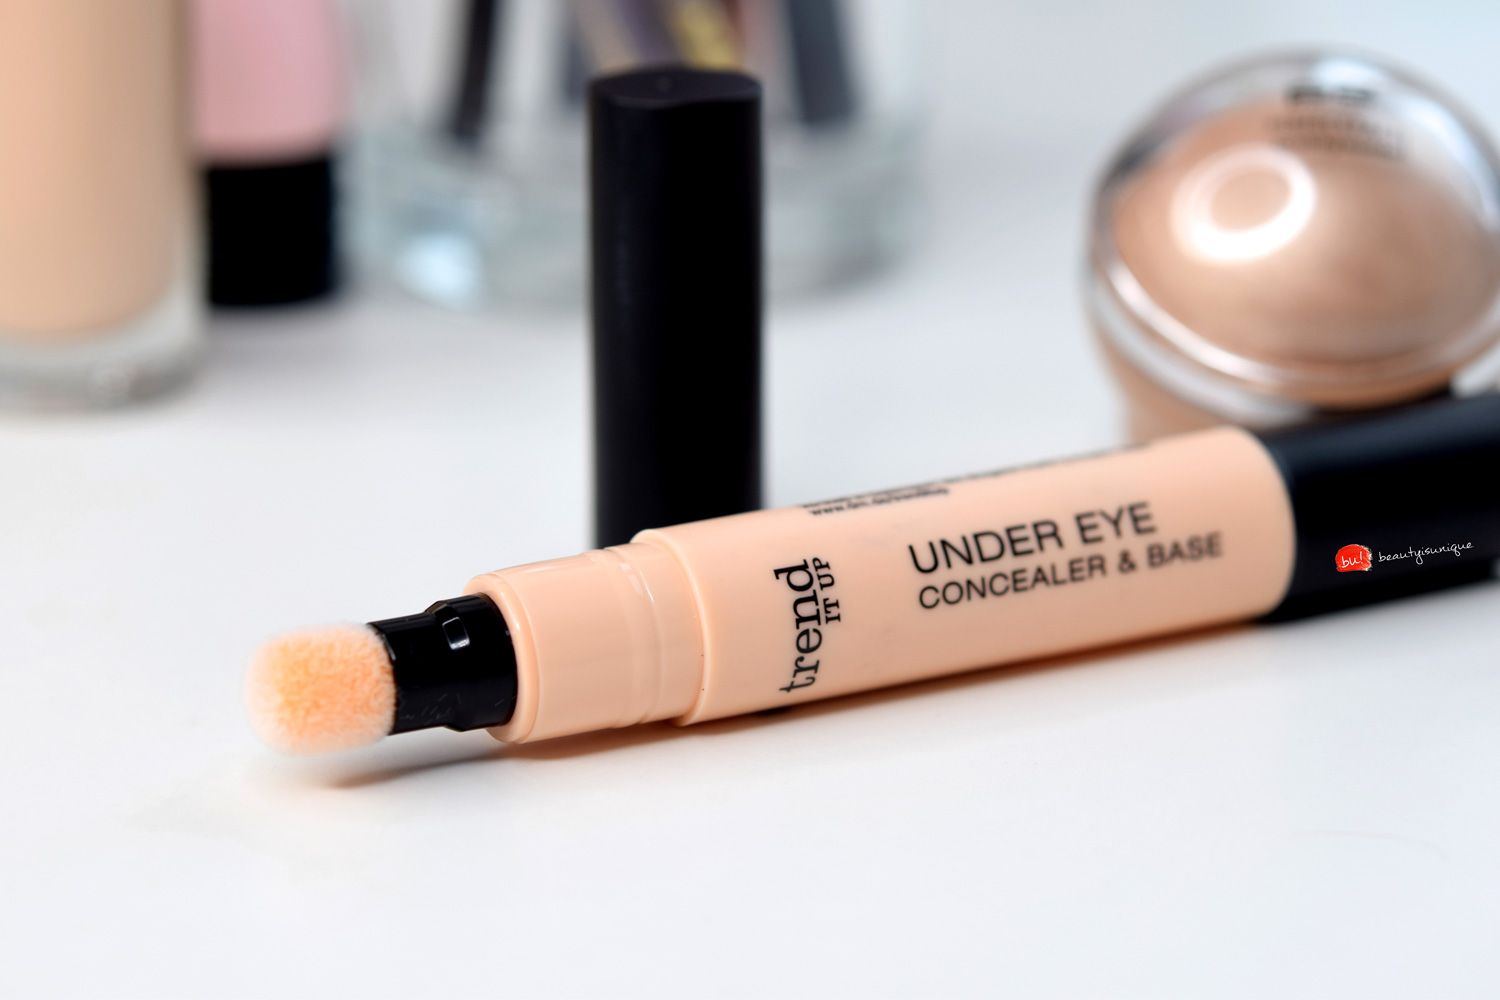 Trend-it-up-under-eye-concealer-&-base-020